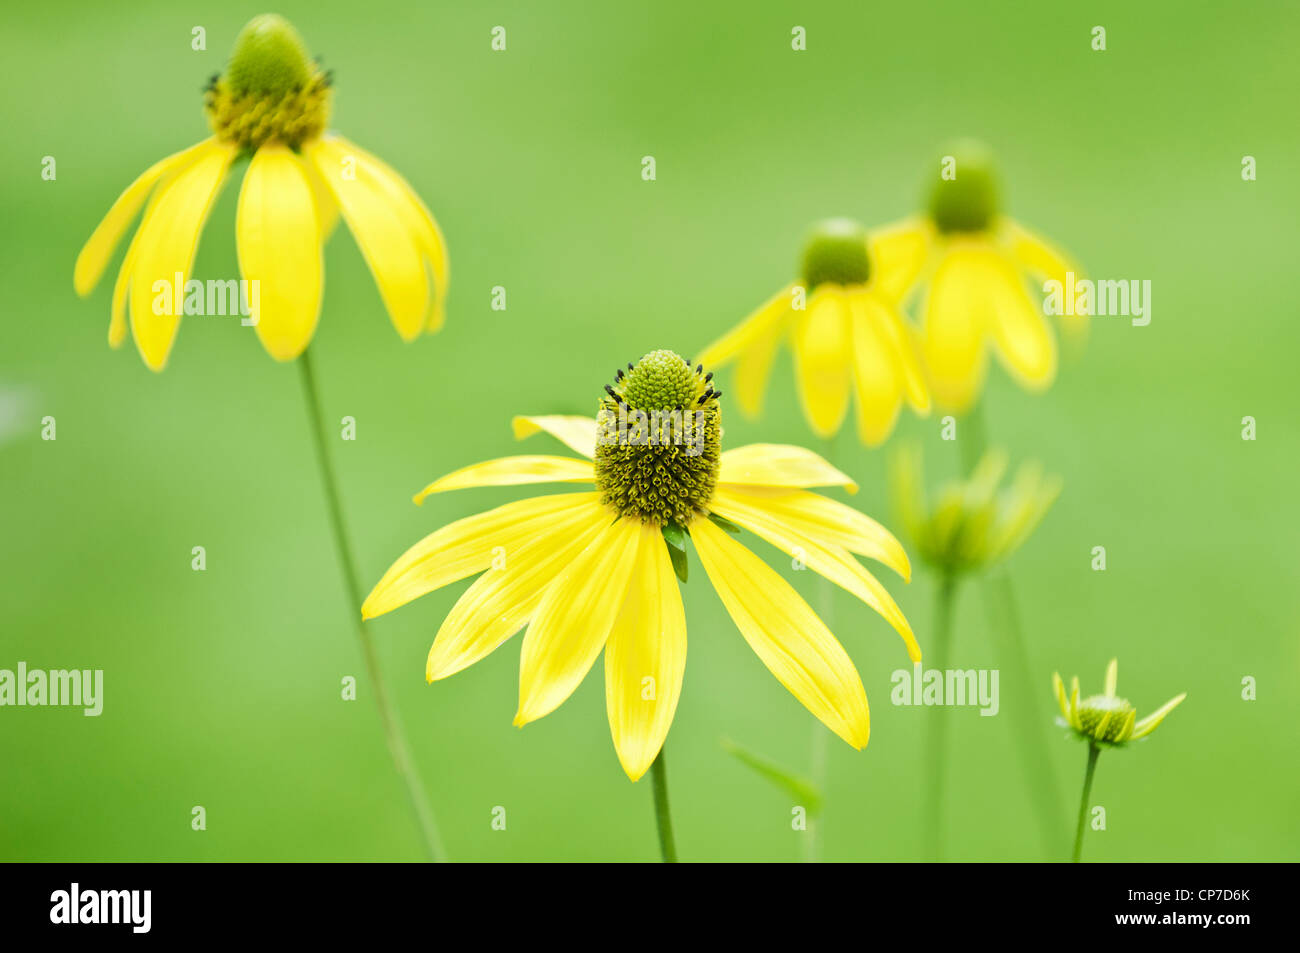 Weed photos weed images alamy - Mauvaise herbe fleur jaune ...